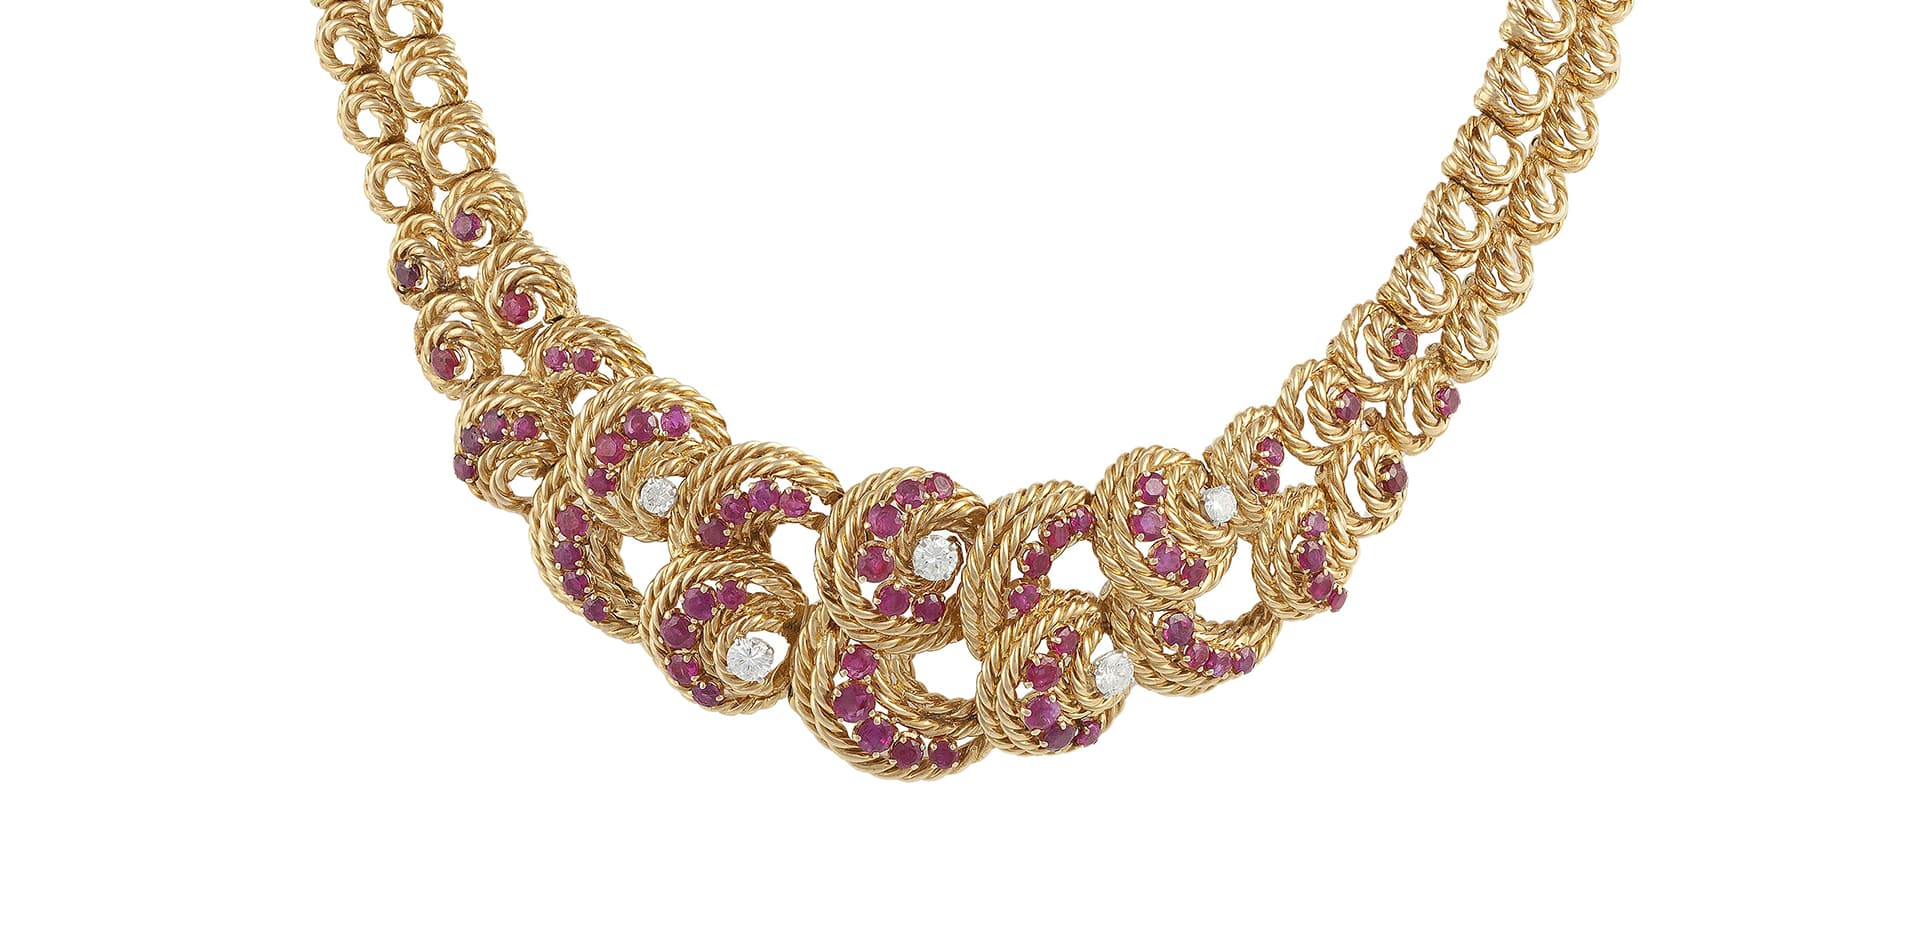 A Ruby and Diamond Necklace by Lacloche, circa 1950's - sold for €14,000